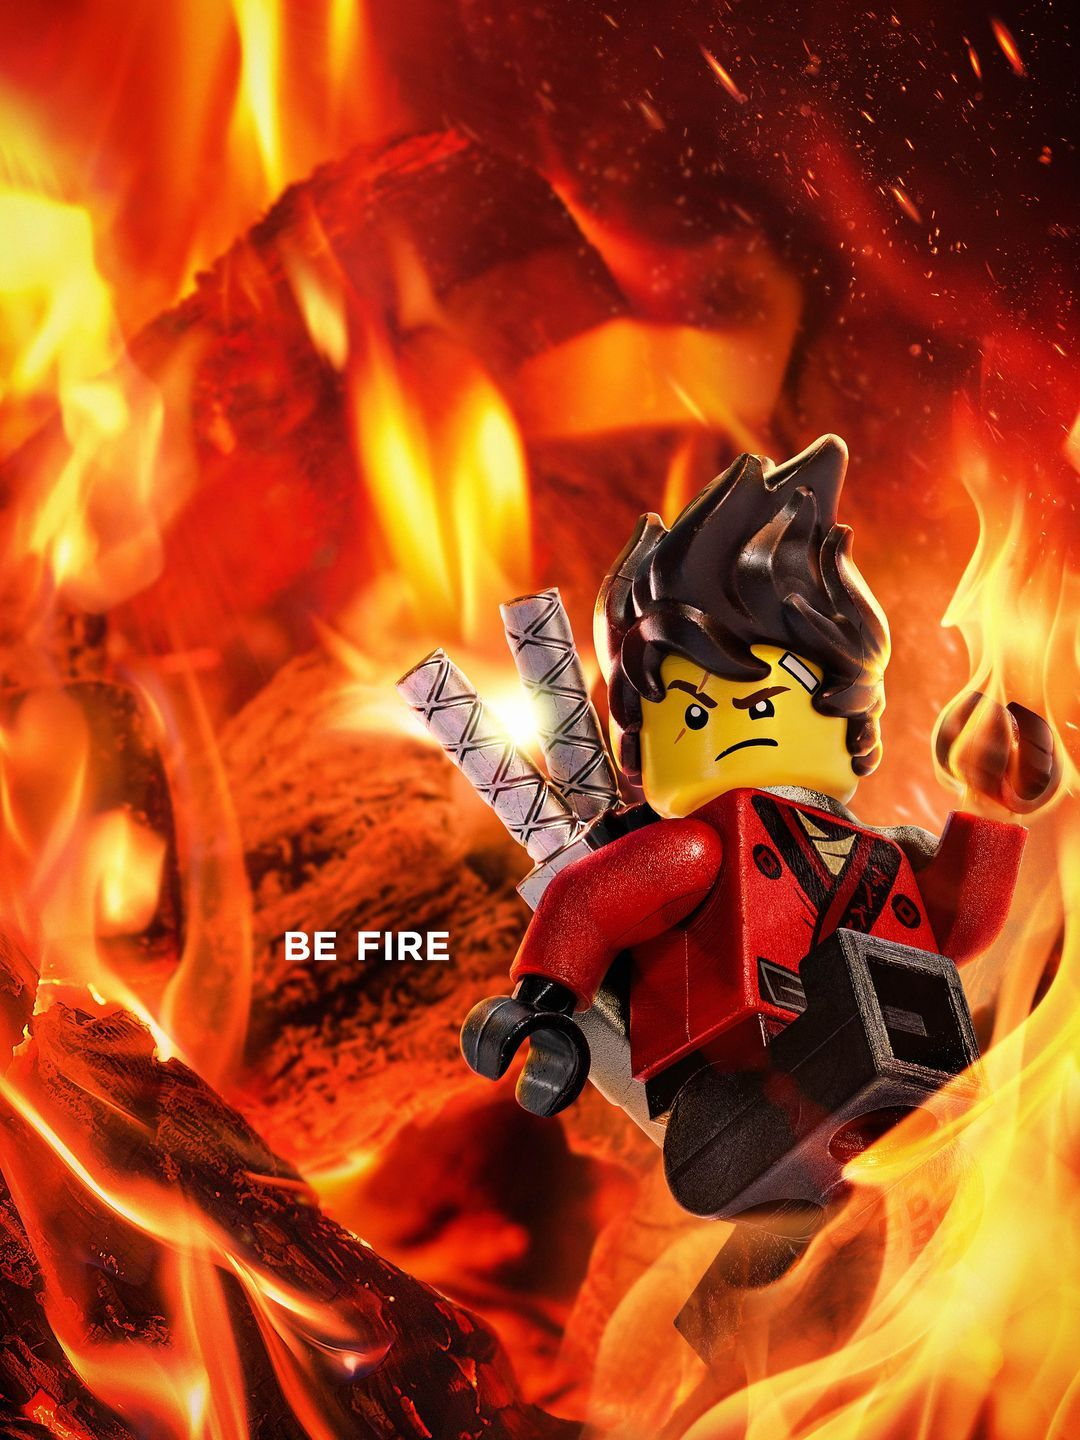 Fire the lego ninjago movie ninjago wiki fandom powered by wikia - Ninja ninjago ...